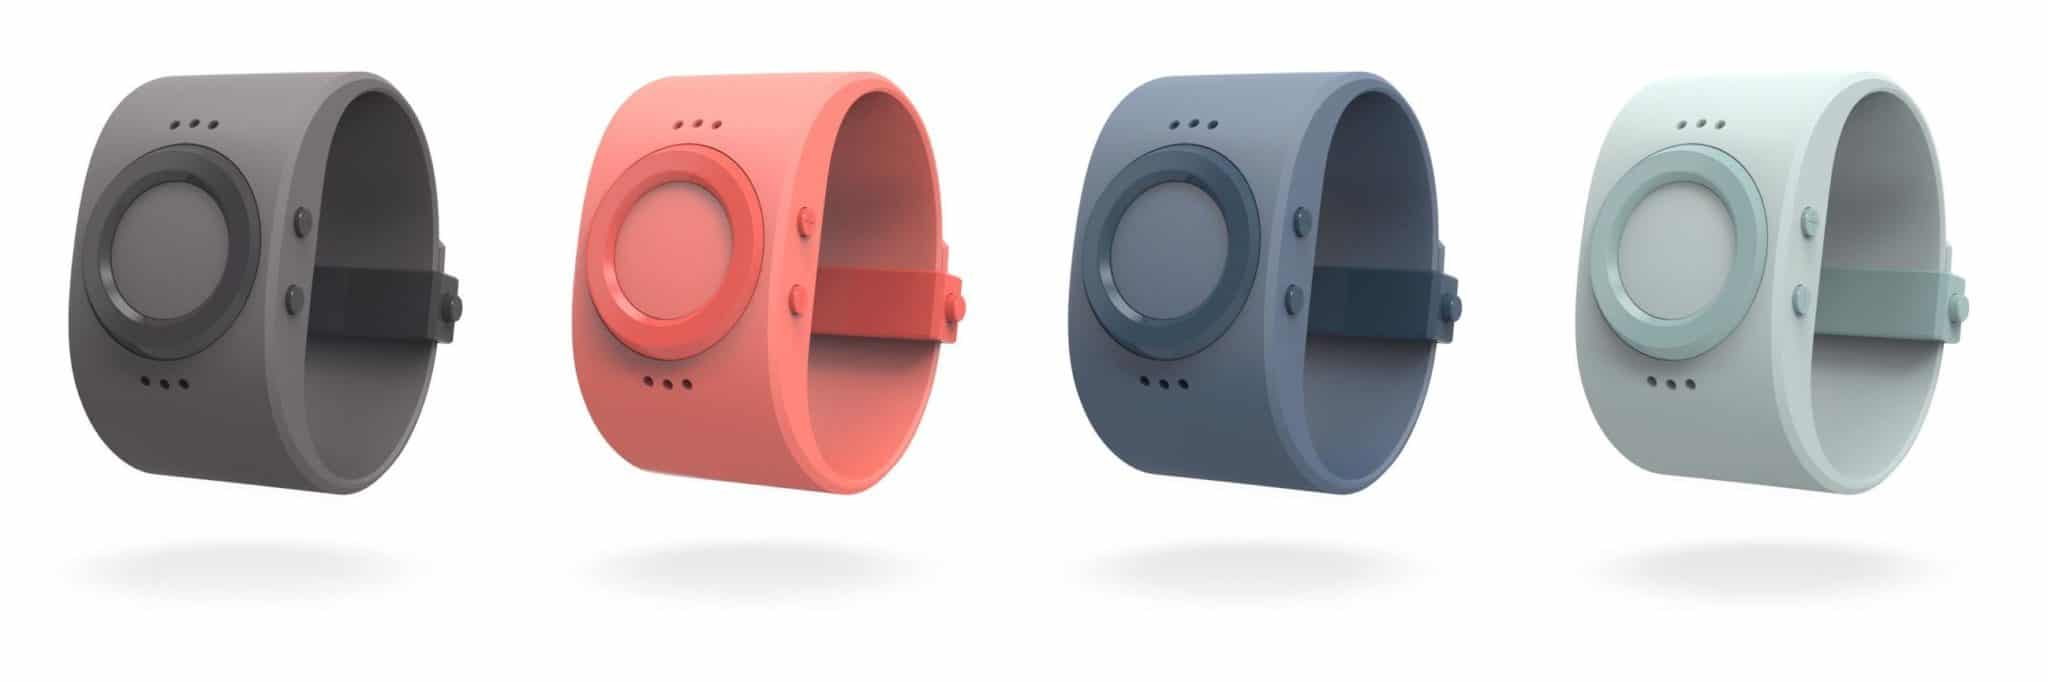 wearable devices that keep your children safe 2 - Wearable devices that keep your children safe